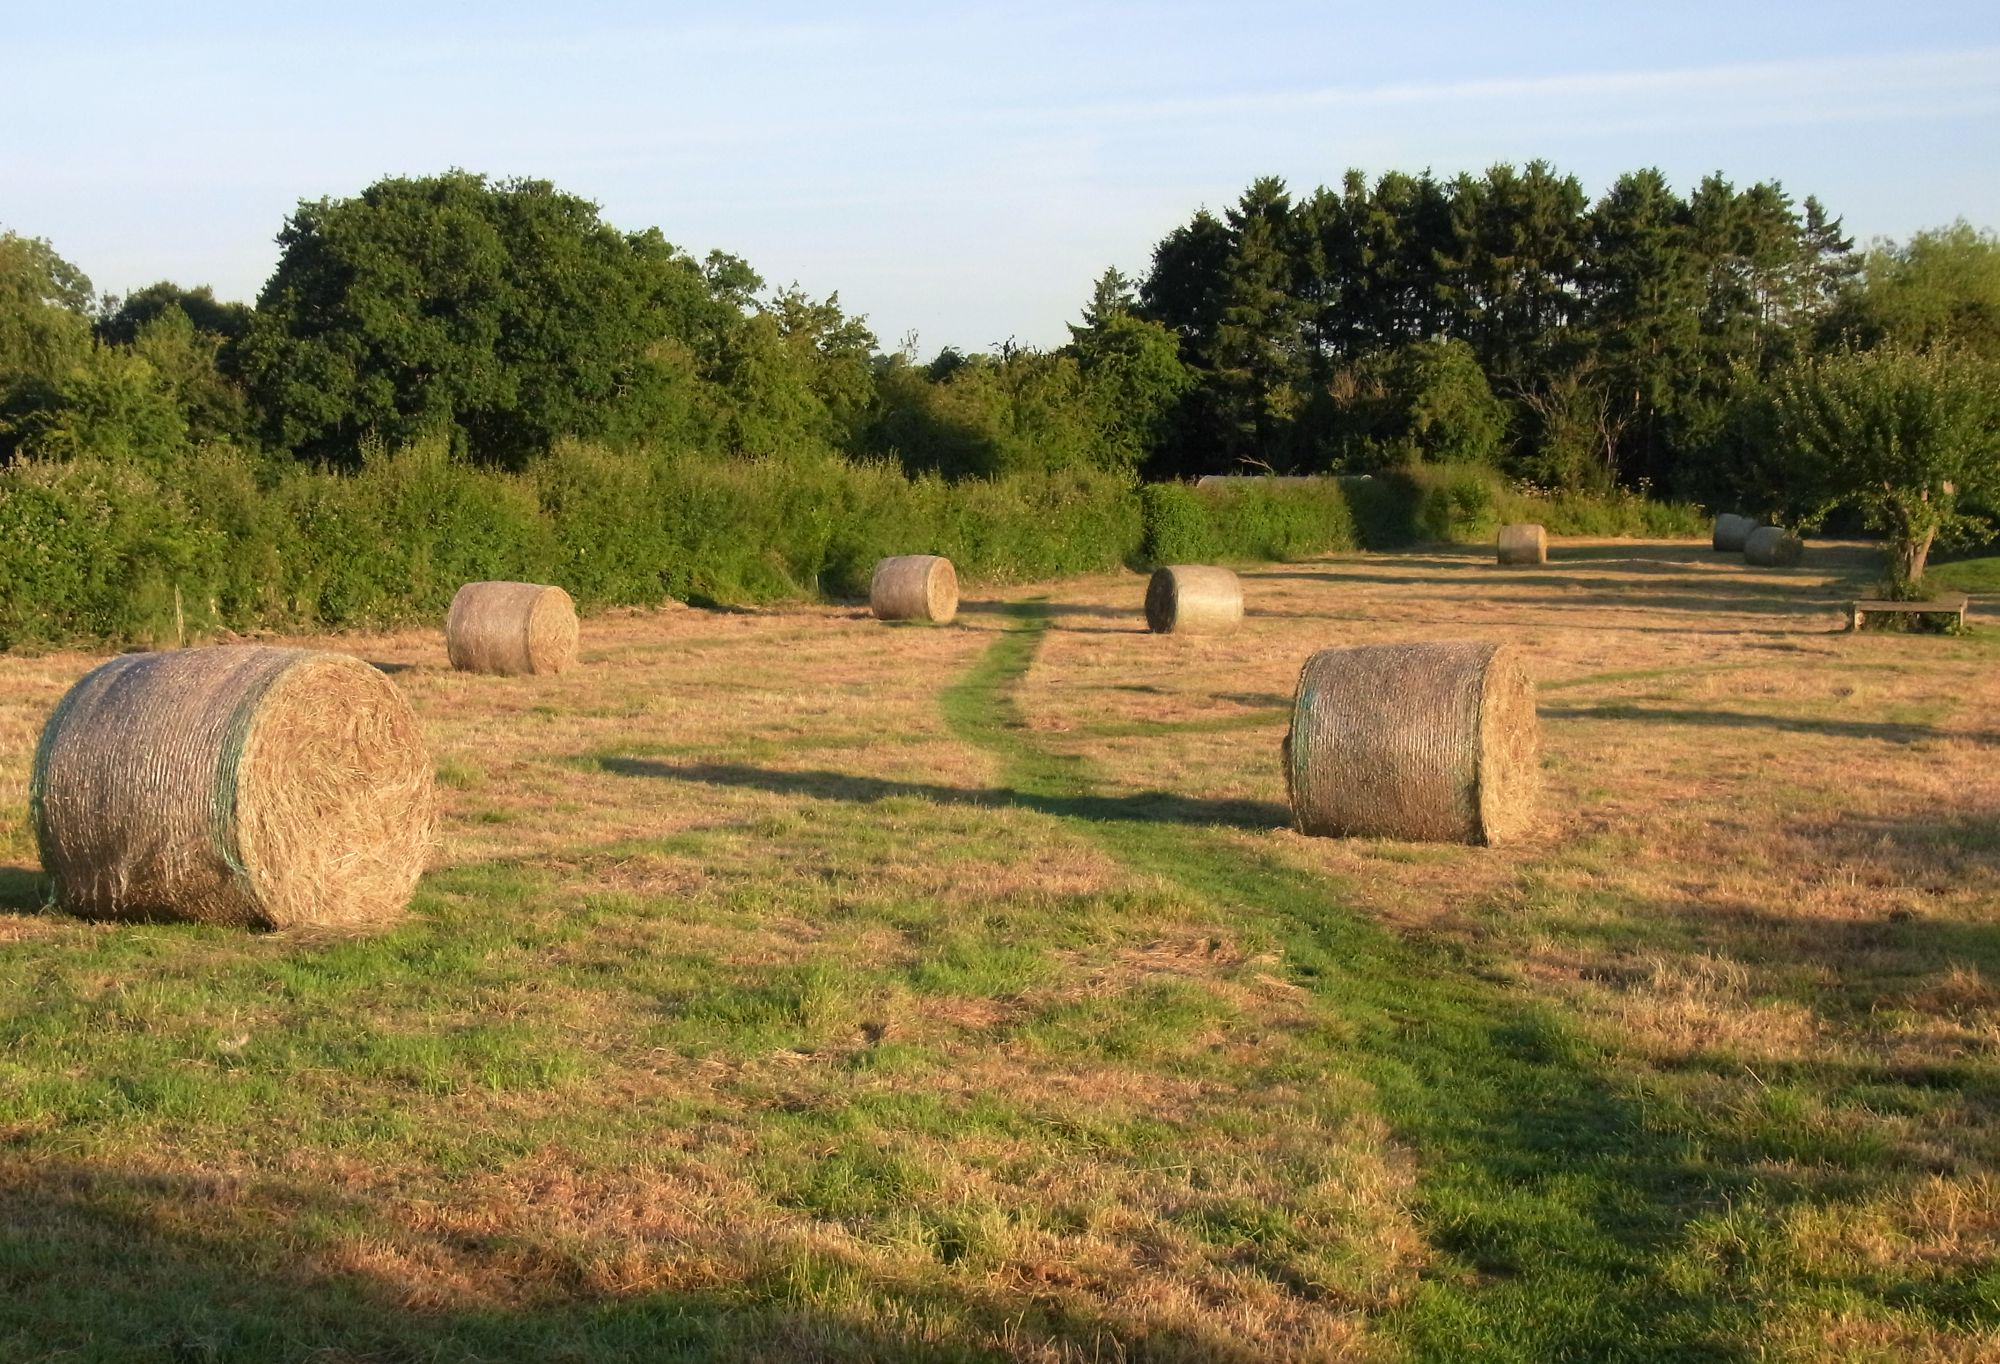 Leominster Camping | Campsites in Leominster, Herefordshire